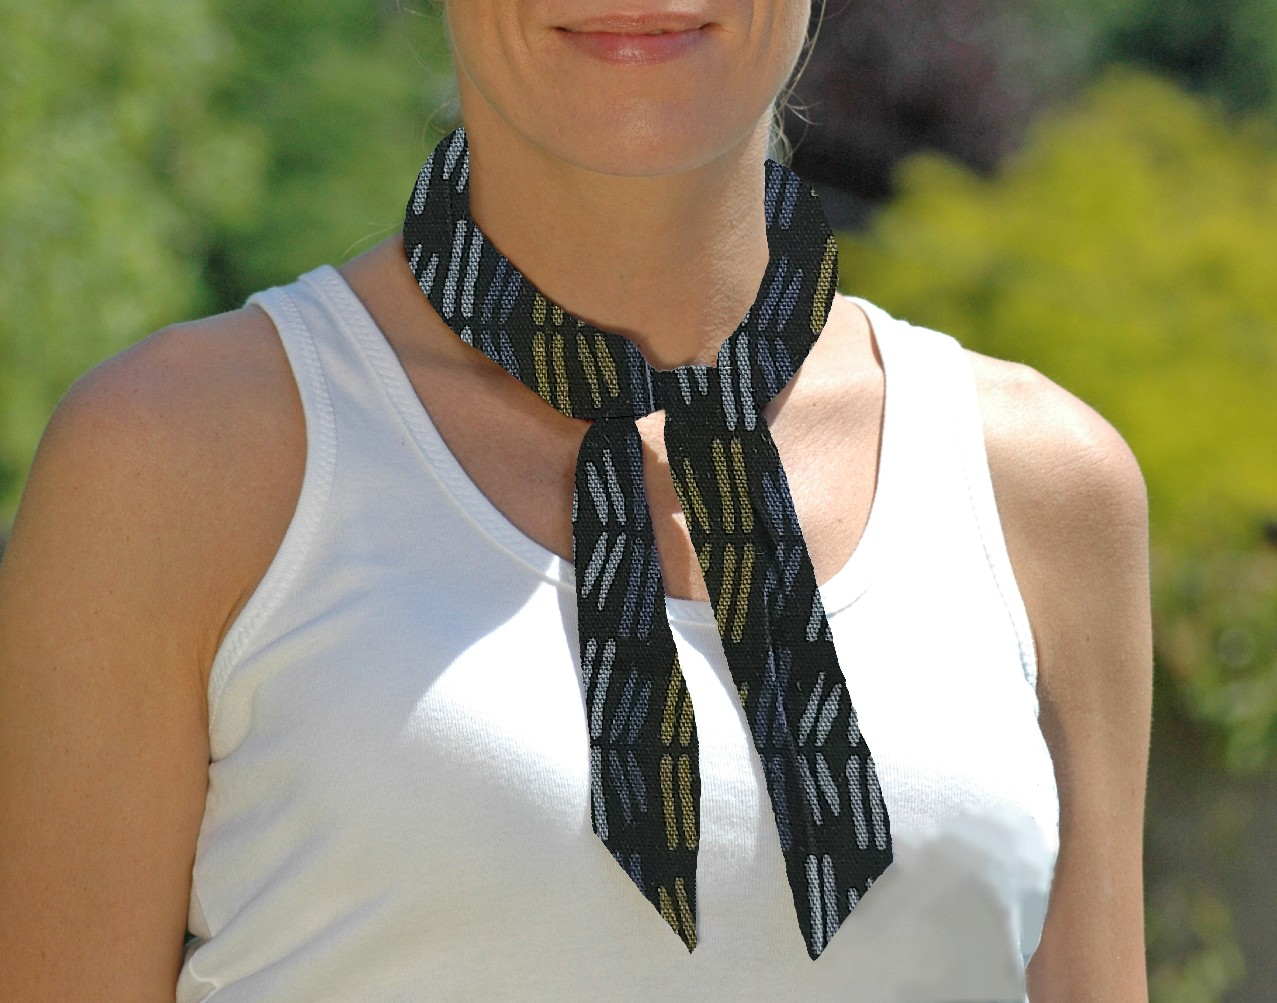 Cooling Tie - 674 Tribal Lines